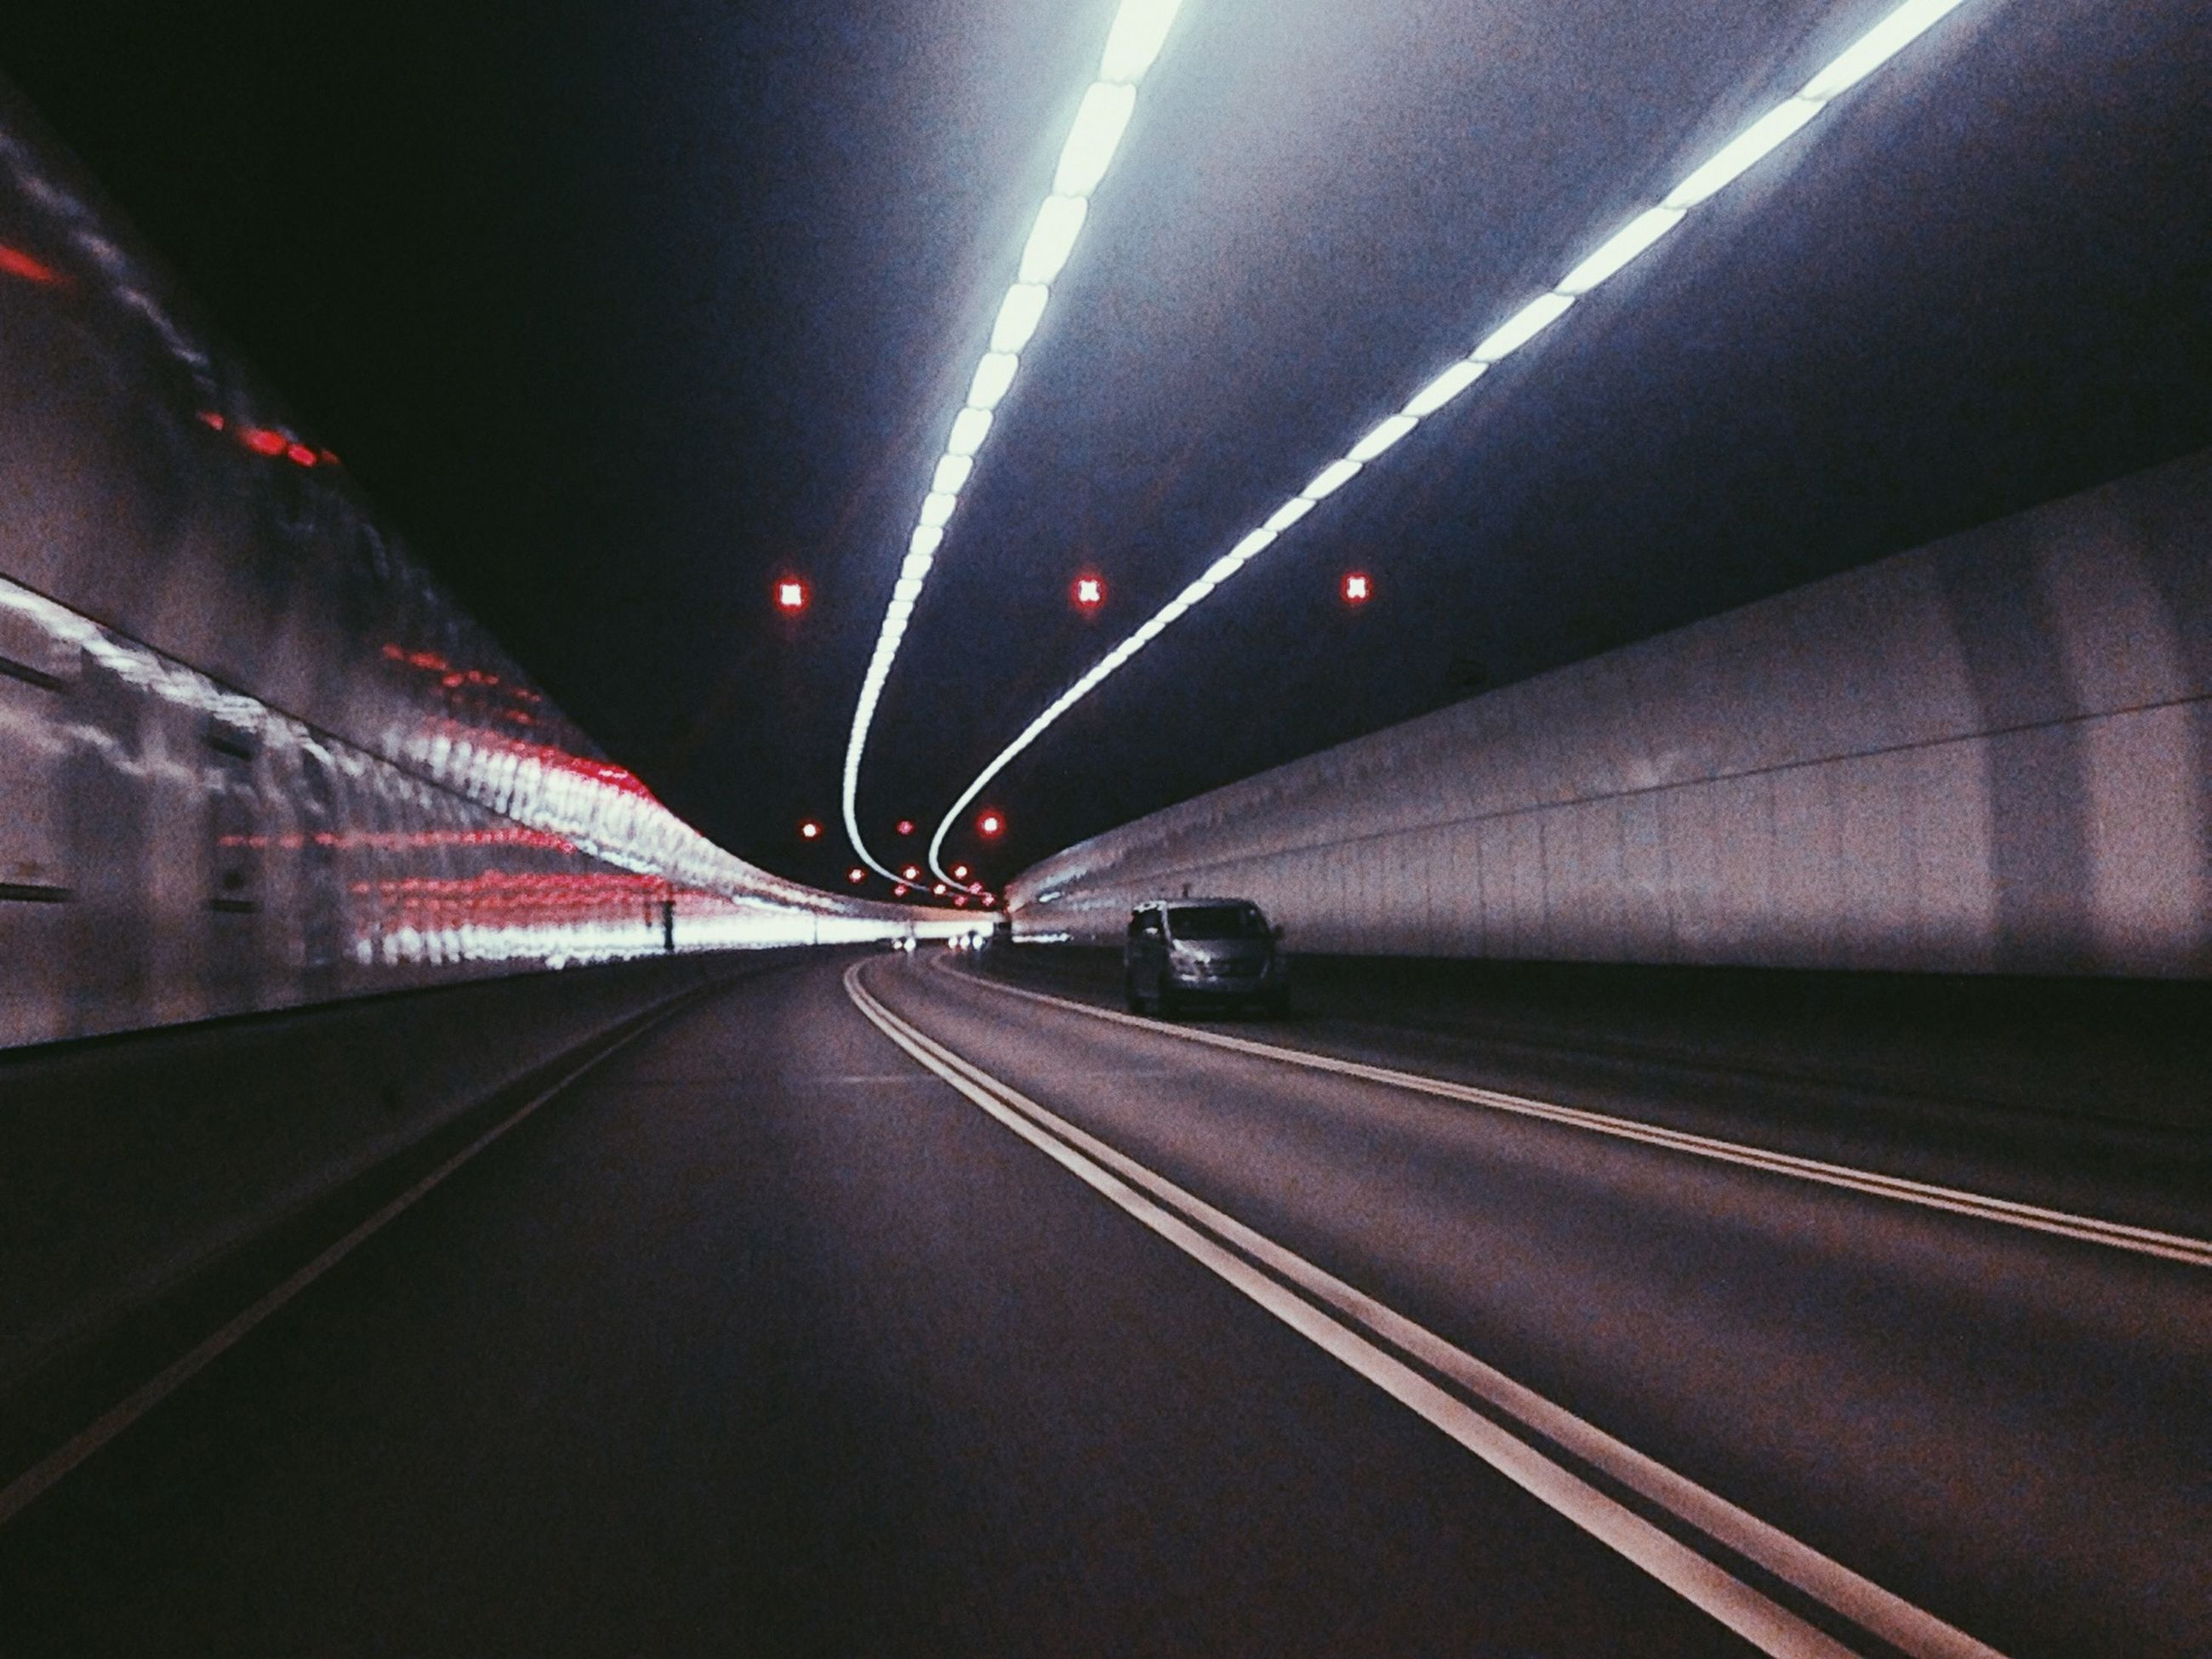 transportation, illuminated, the way forward, road, road marking, diminishing perspective, tunnel, night, vanishing point, mode of transport, motion, long exposure, speed, on the move, light trail, blurred motion, lighting equipment, indoors, travel, land vehicle